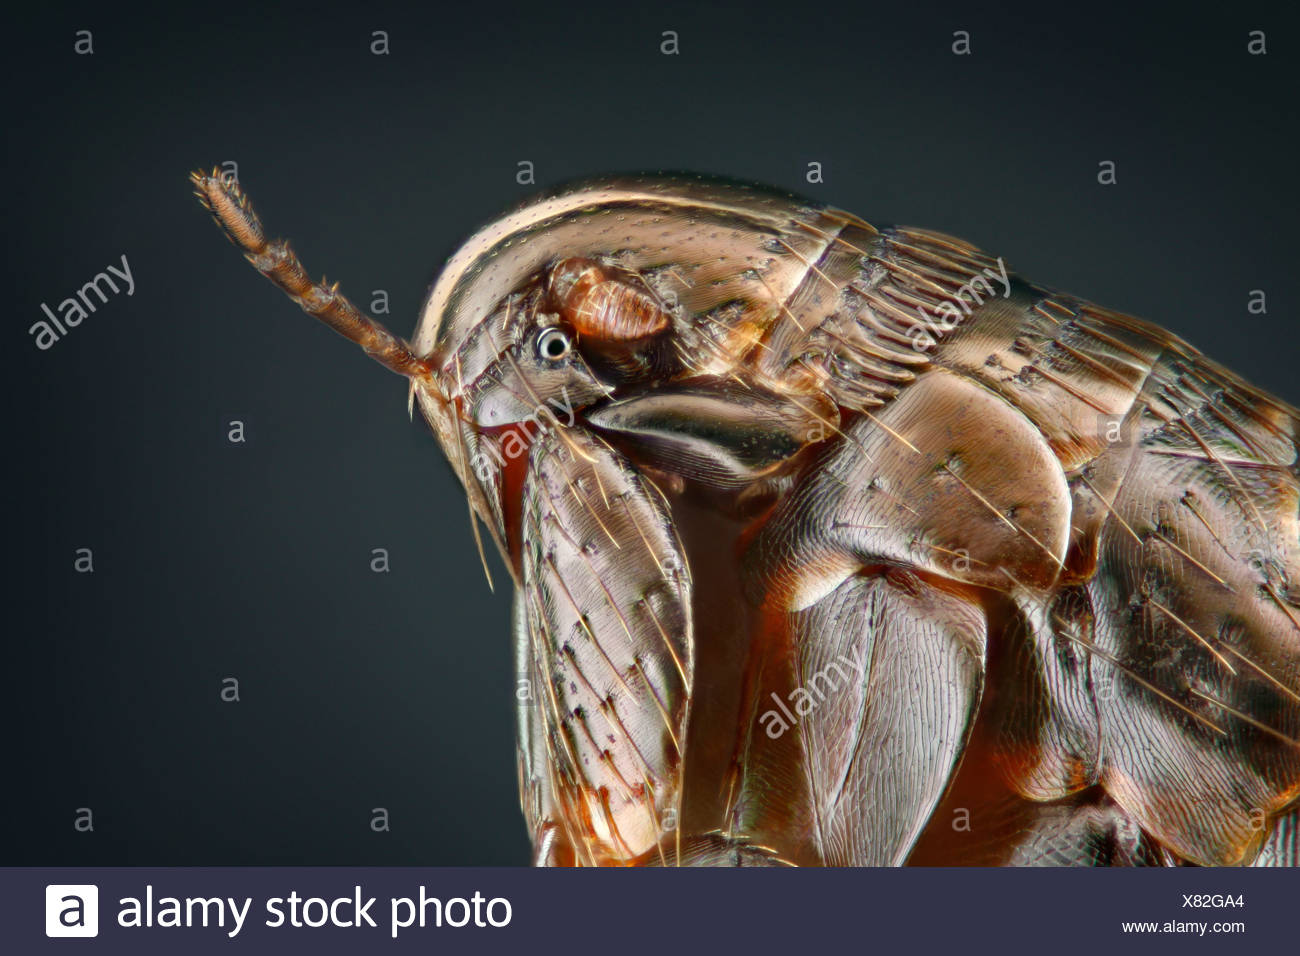 Head of a hen flea (Ceratophyllus gallinae), extreme close-up - Stock Image